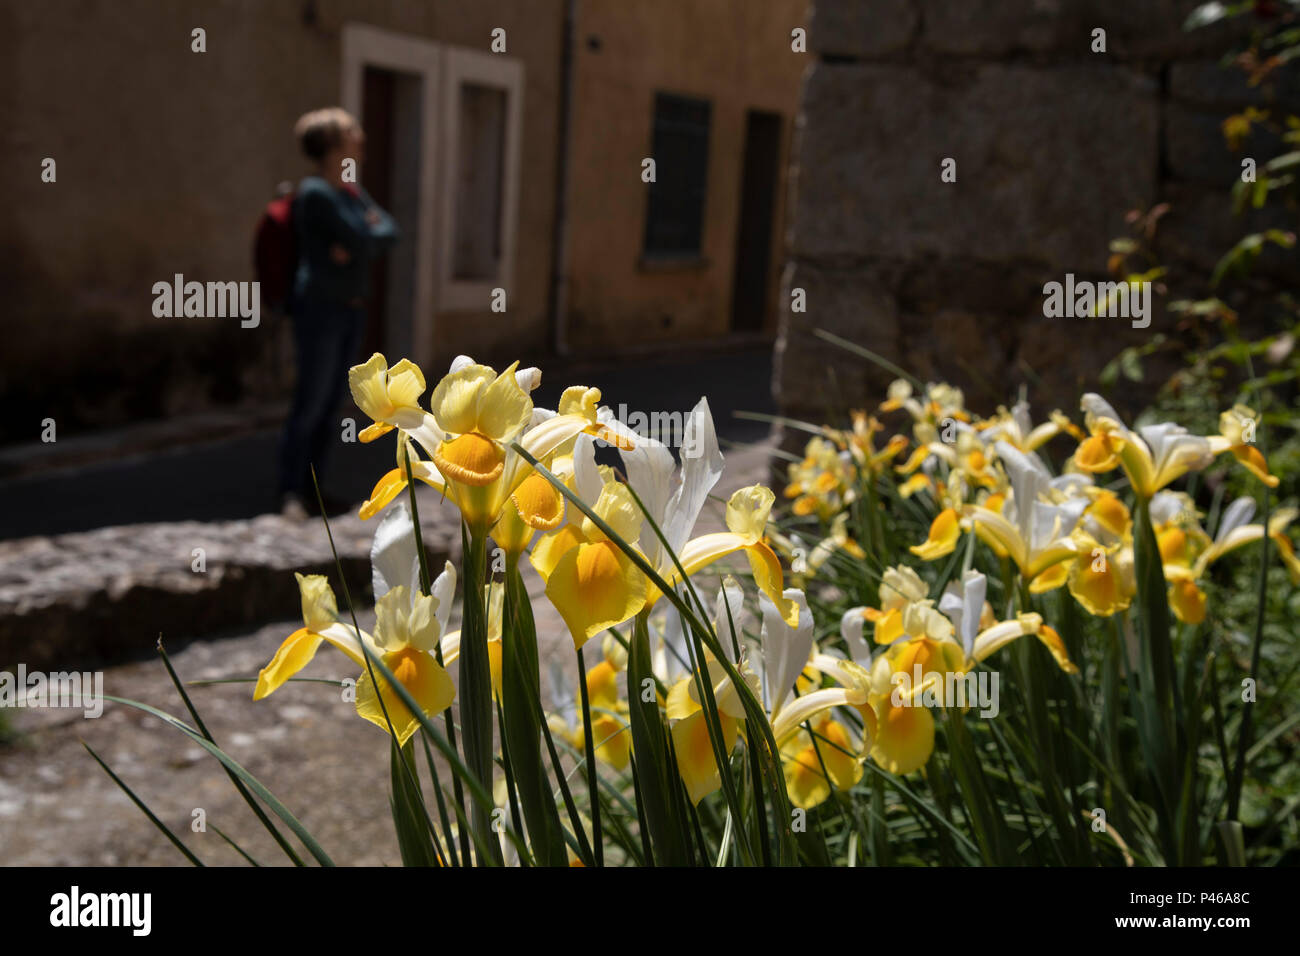 Spring flowers in termes france termes is a commune in the aude spring flowers in termes france termes is a commune in the aude department in southern france mightylinksfo